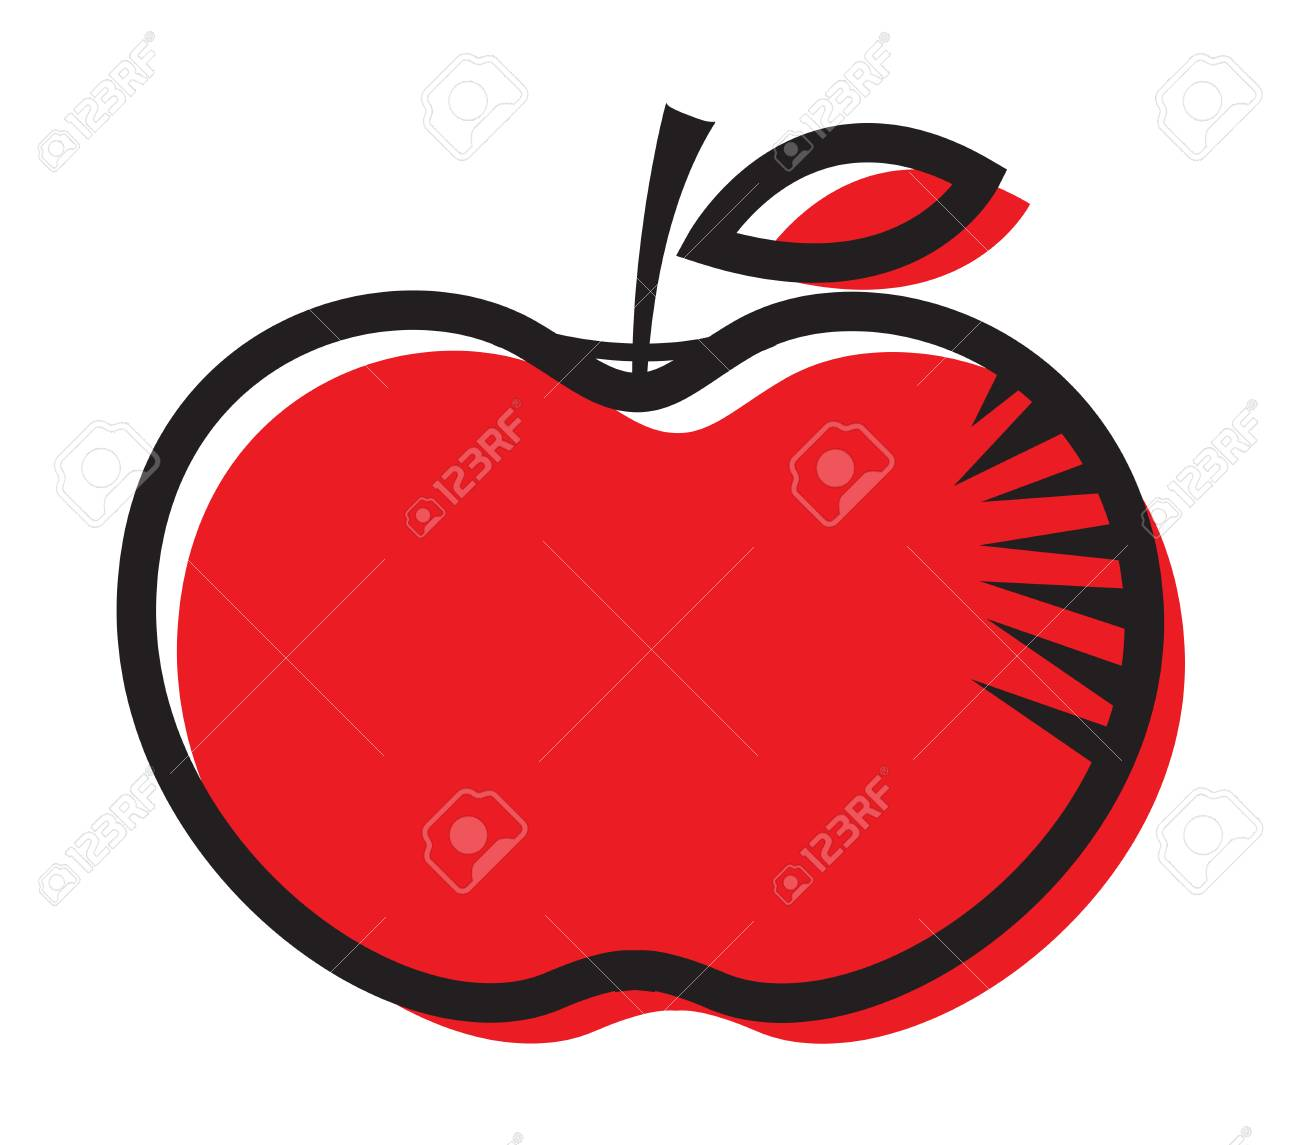 hight resolution of foto de archivo red apple clipart dise o